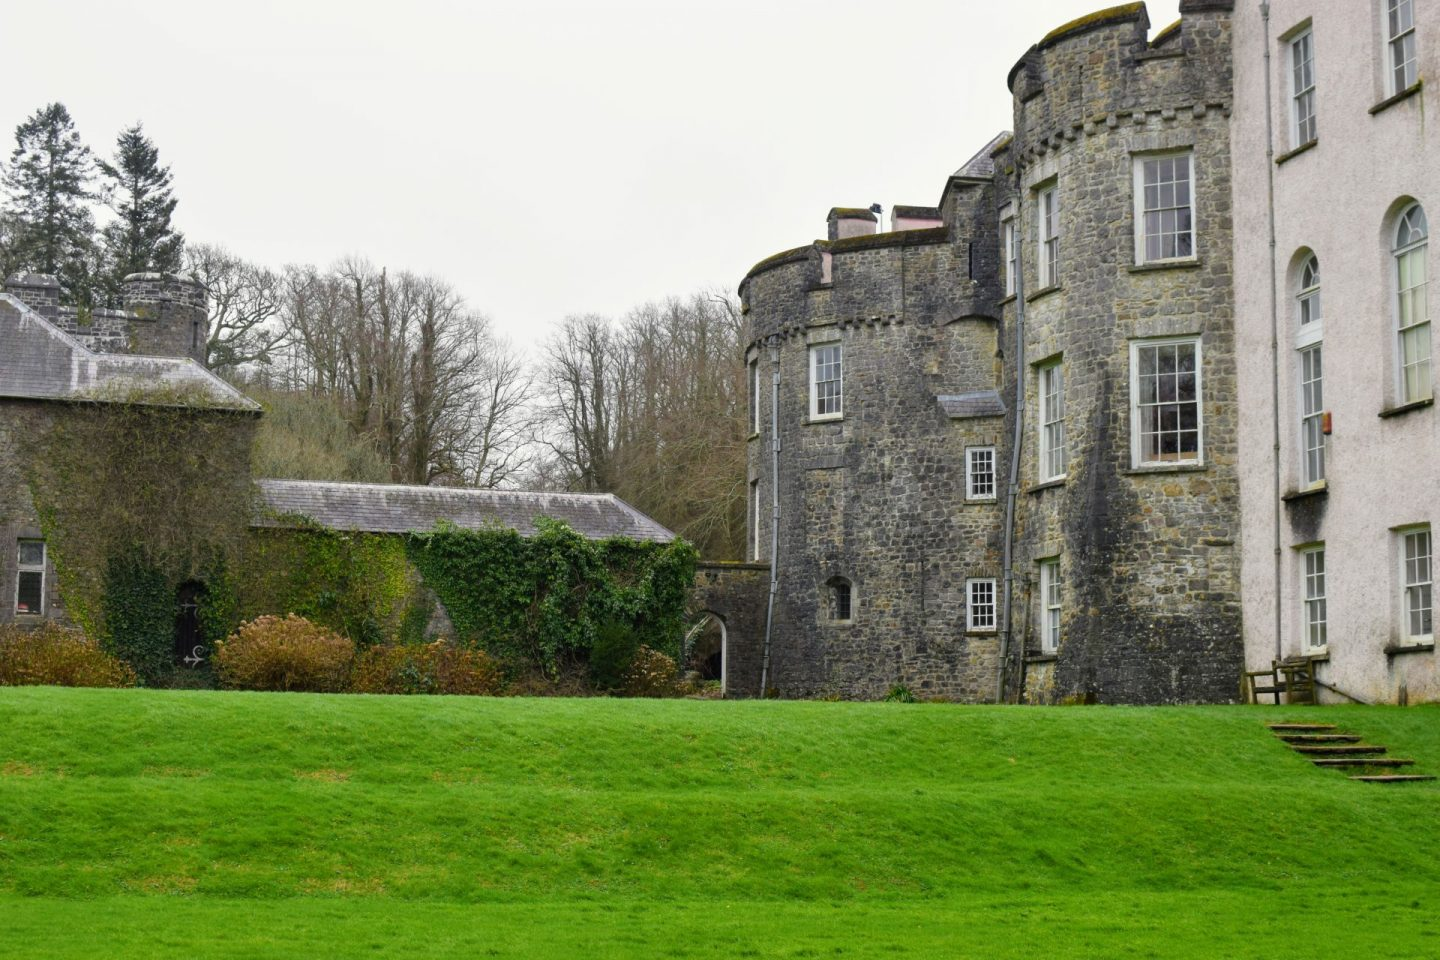 , Visiting Picton Castle and Gardens, Pembrokeshire